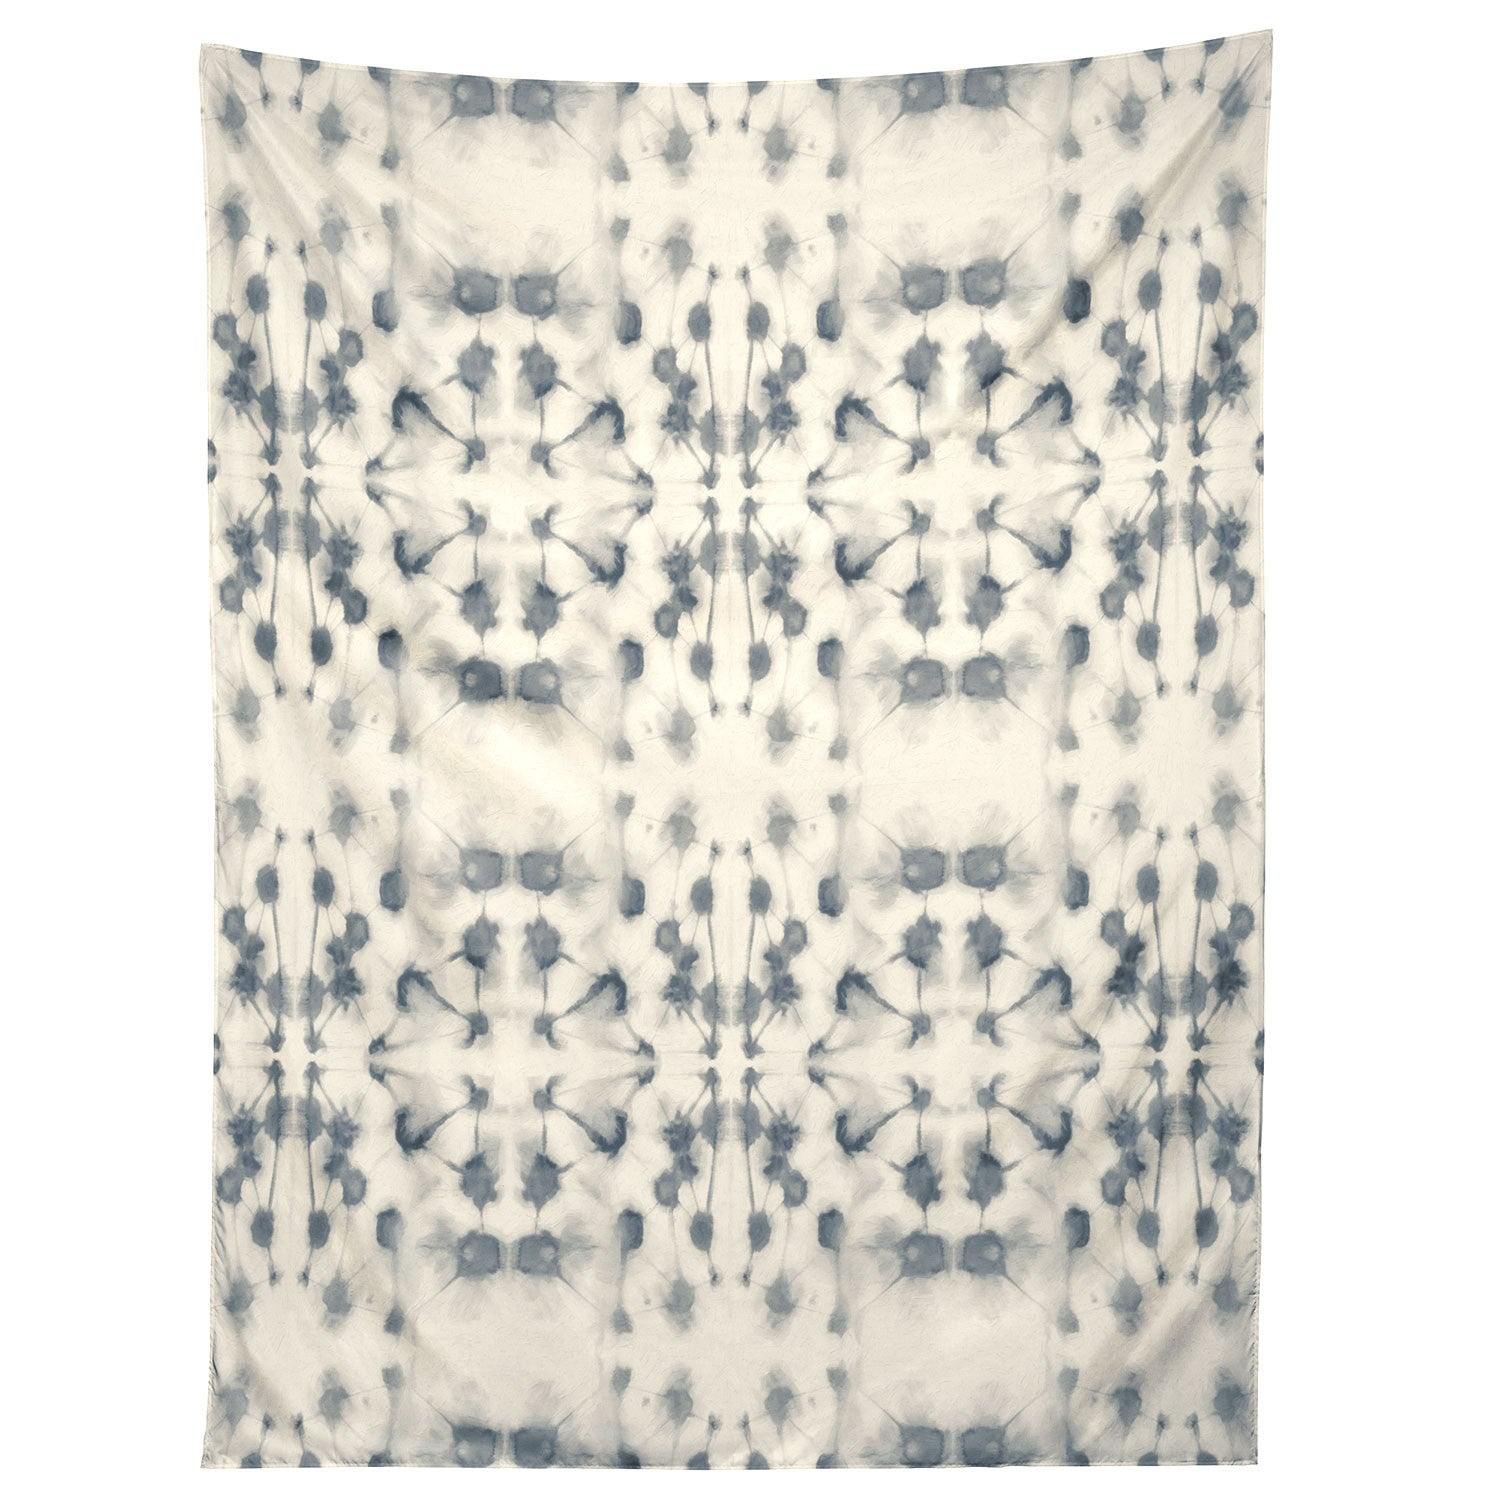 Mirror Dye Tapestry - Light Grey